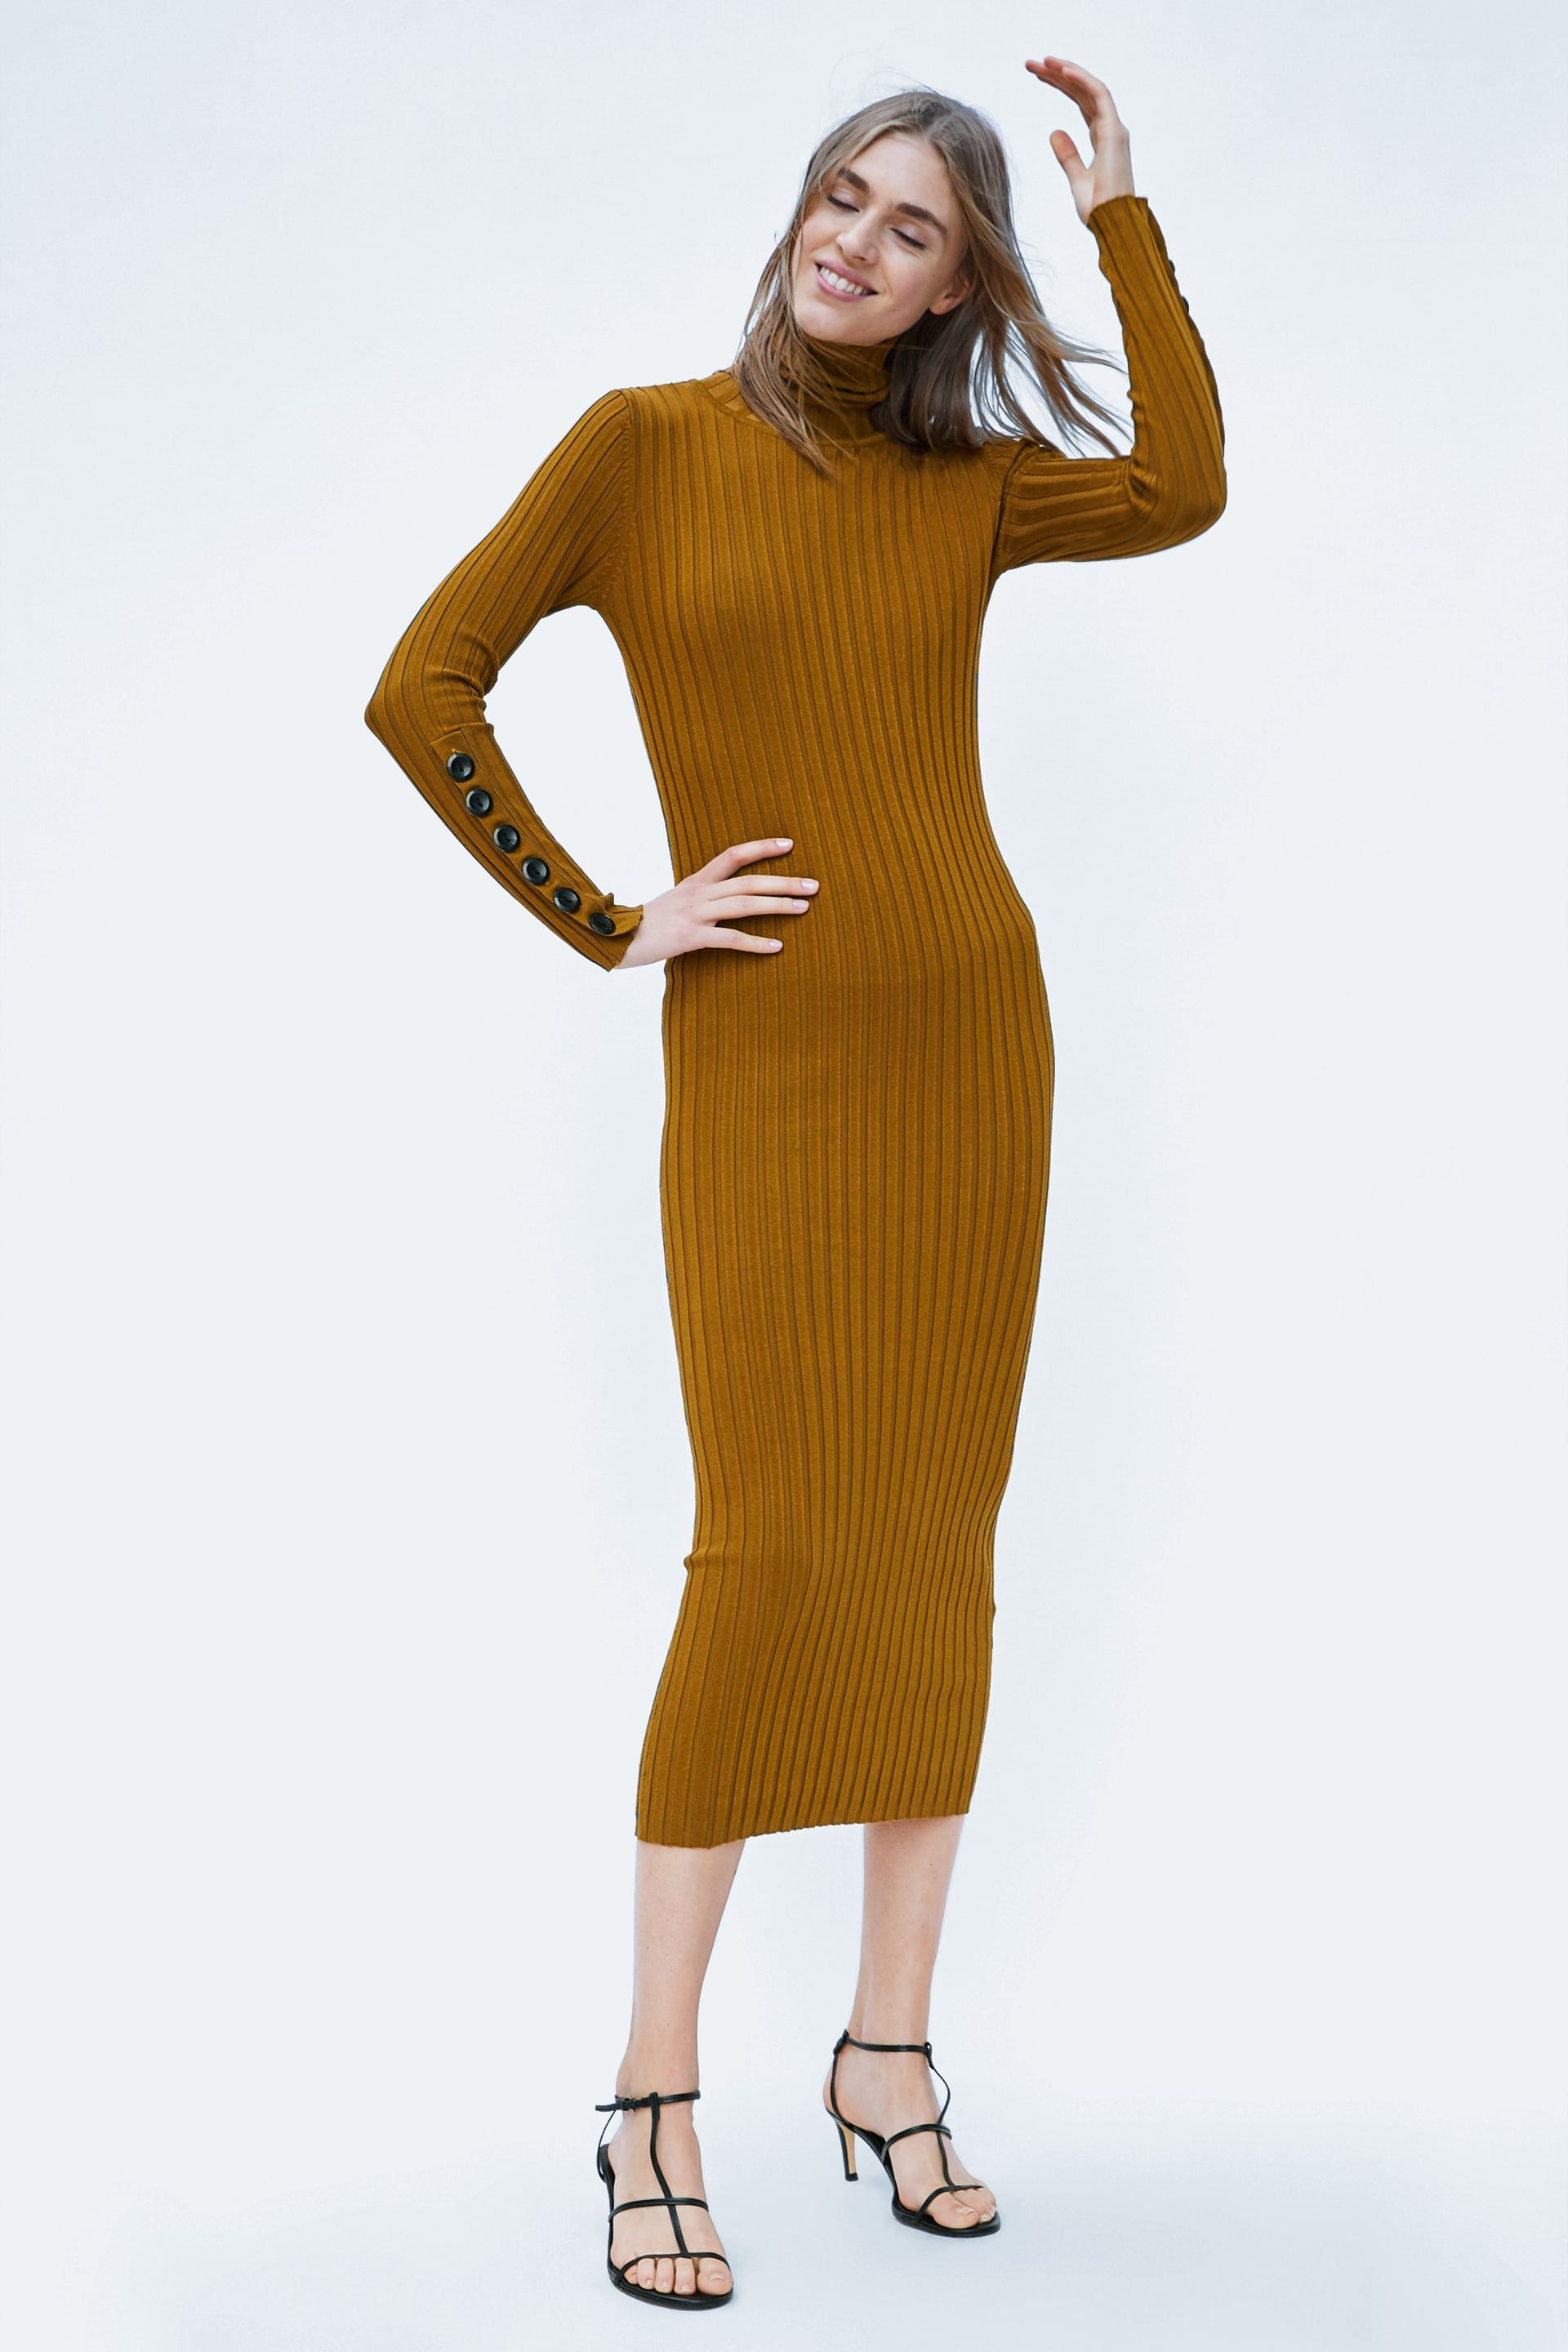 ee6ee11b1f Image 1 of KNIT DRESS WITH BUTTONS from Zara